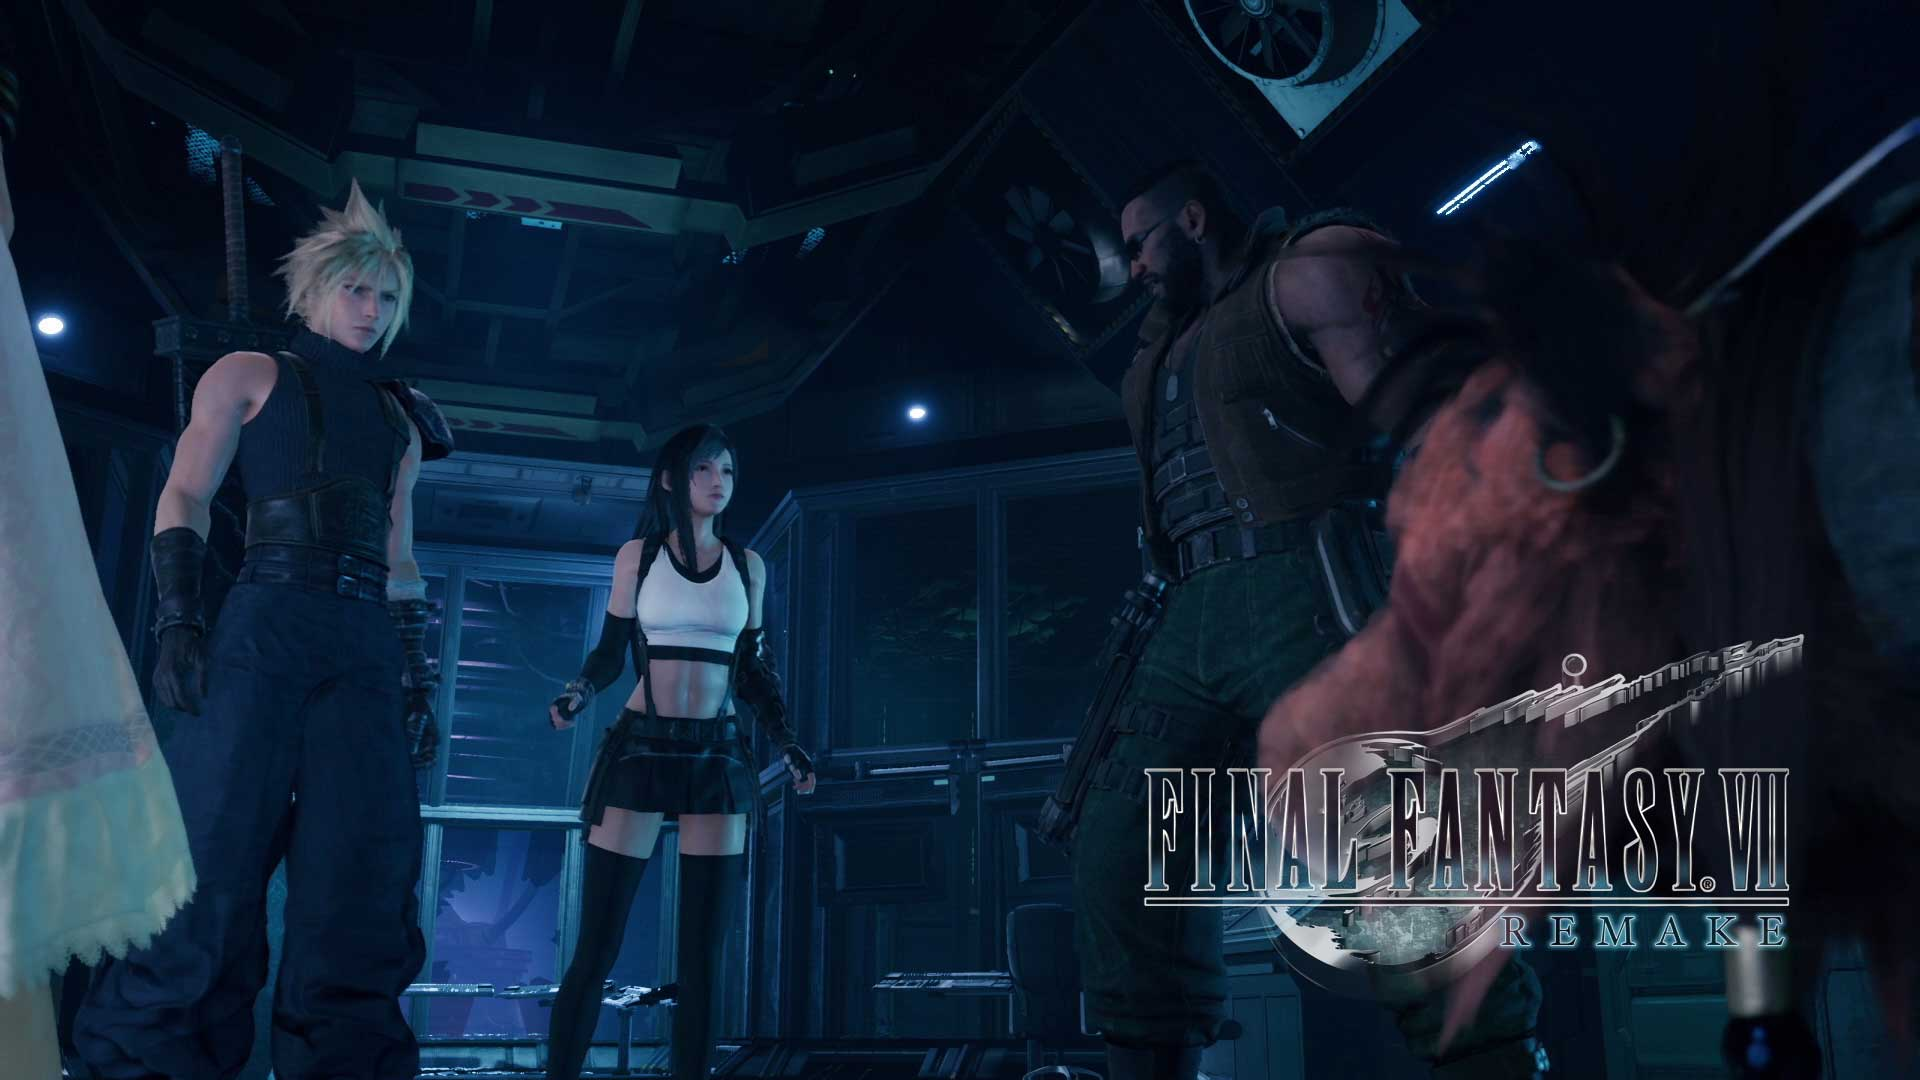 ff7 remake trailer